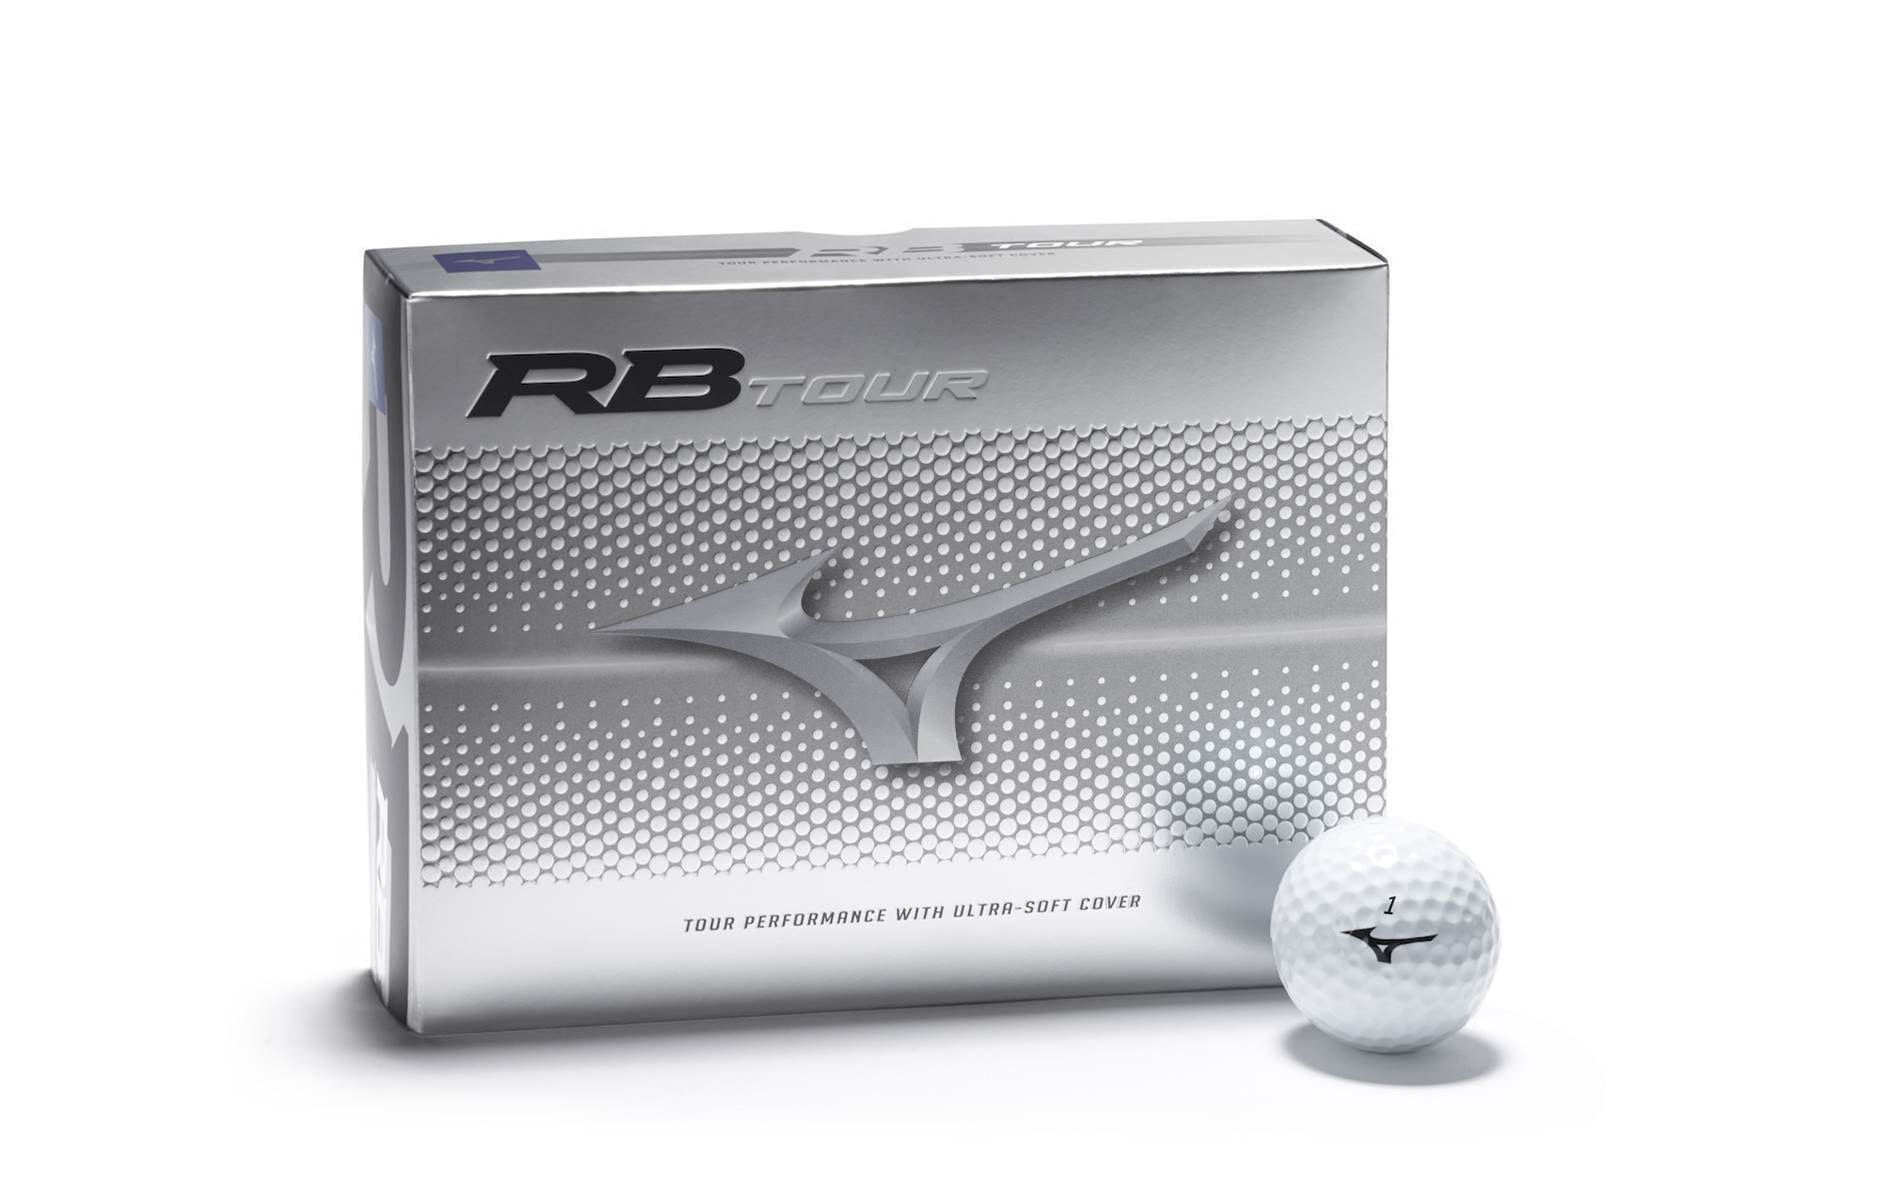 Mizuno adds new golf balls, irons and hybrids to range